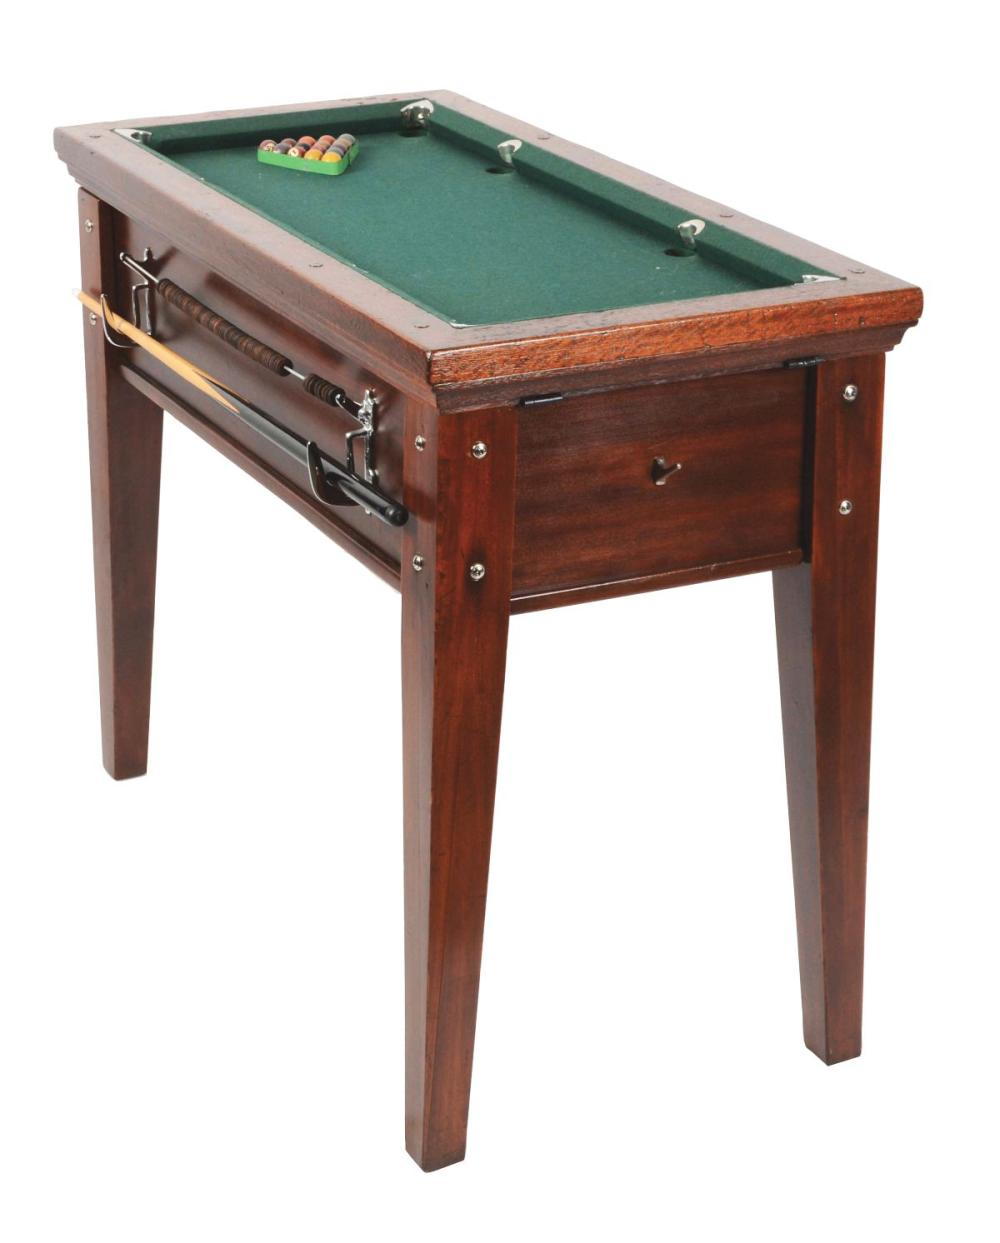 MINIATURE COIN OPERATED POOL TABLE WITH COVER AND SUPPLIES.